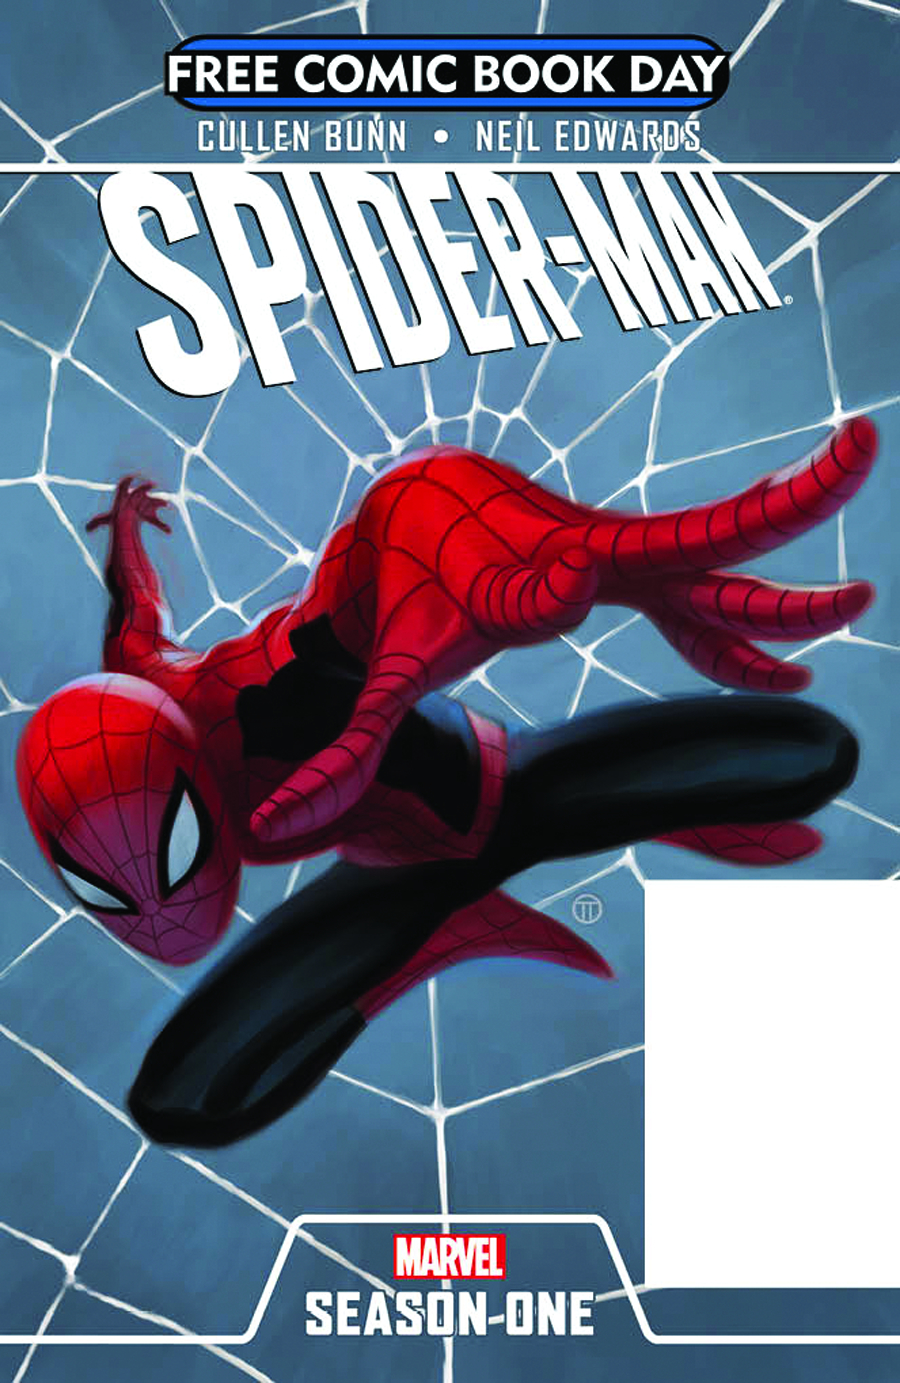 FCBD 2012 SPIDER-MAN SEASON ONE